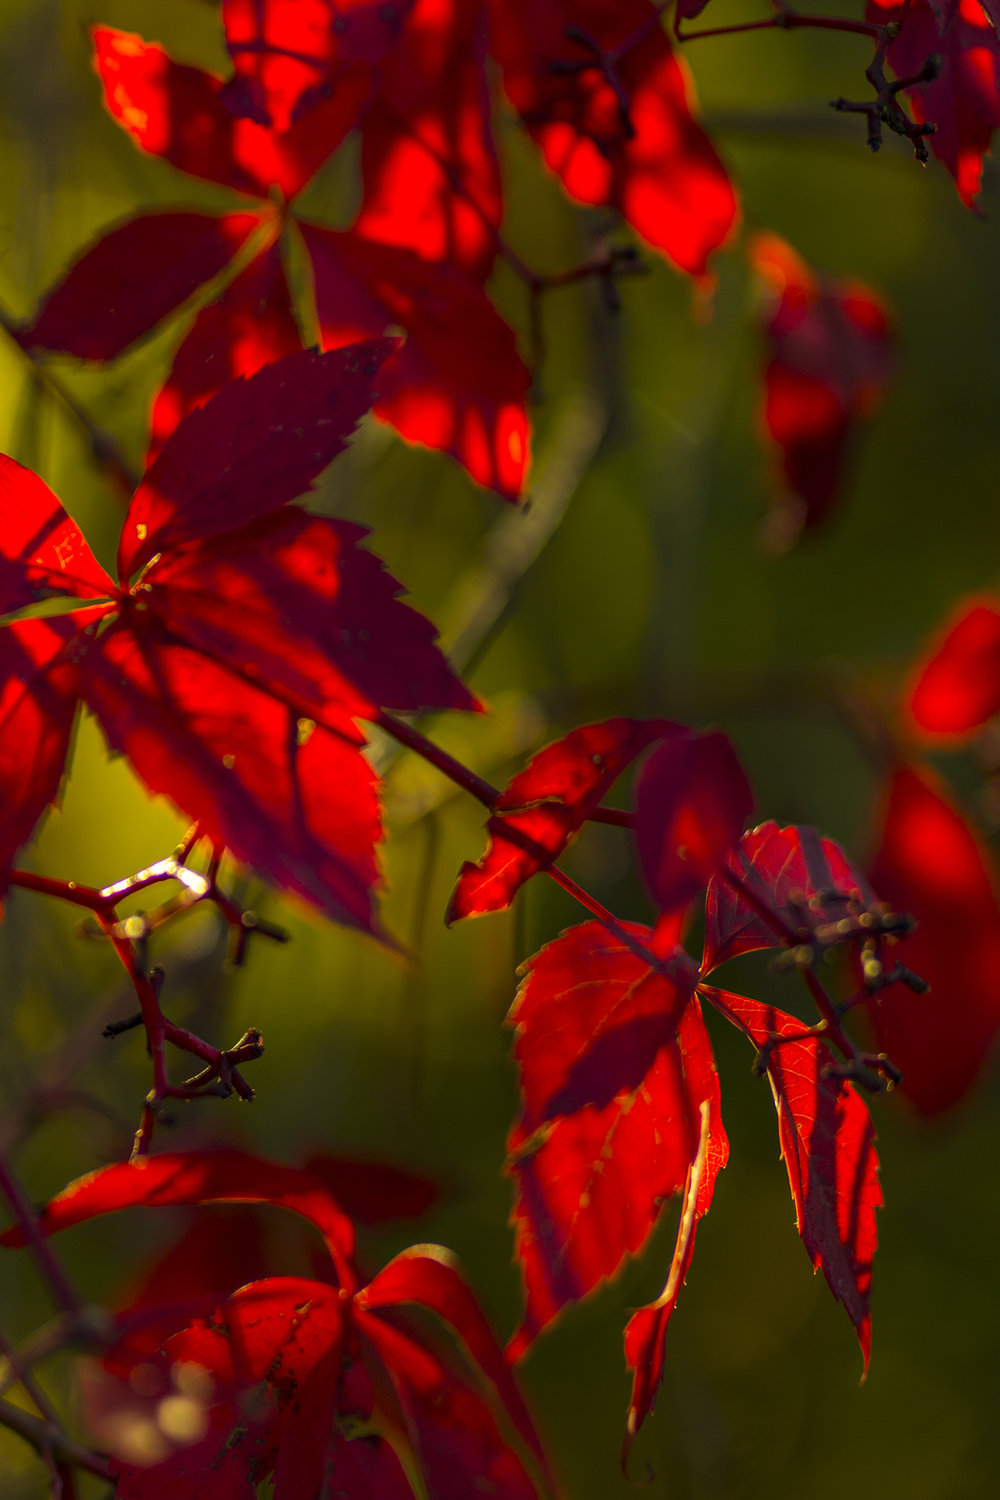 Christmas-Colours-in-the-Fall-BRimages